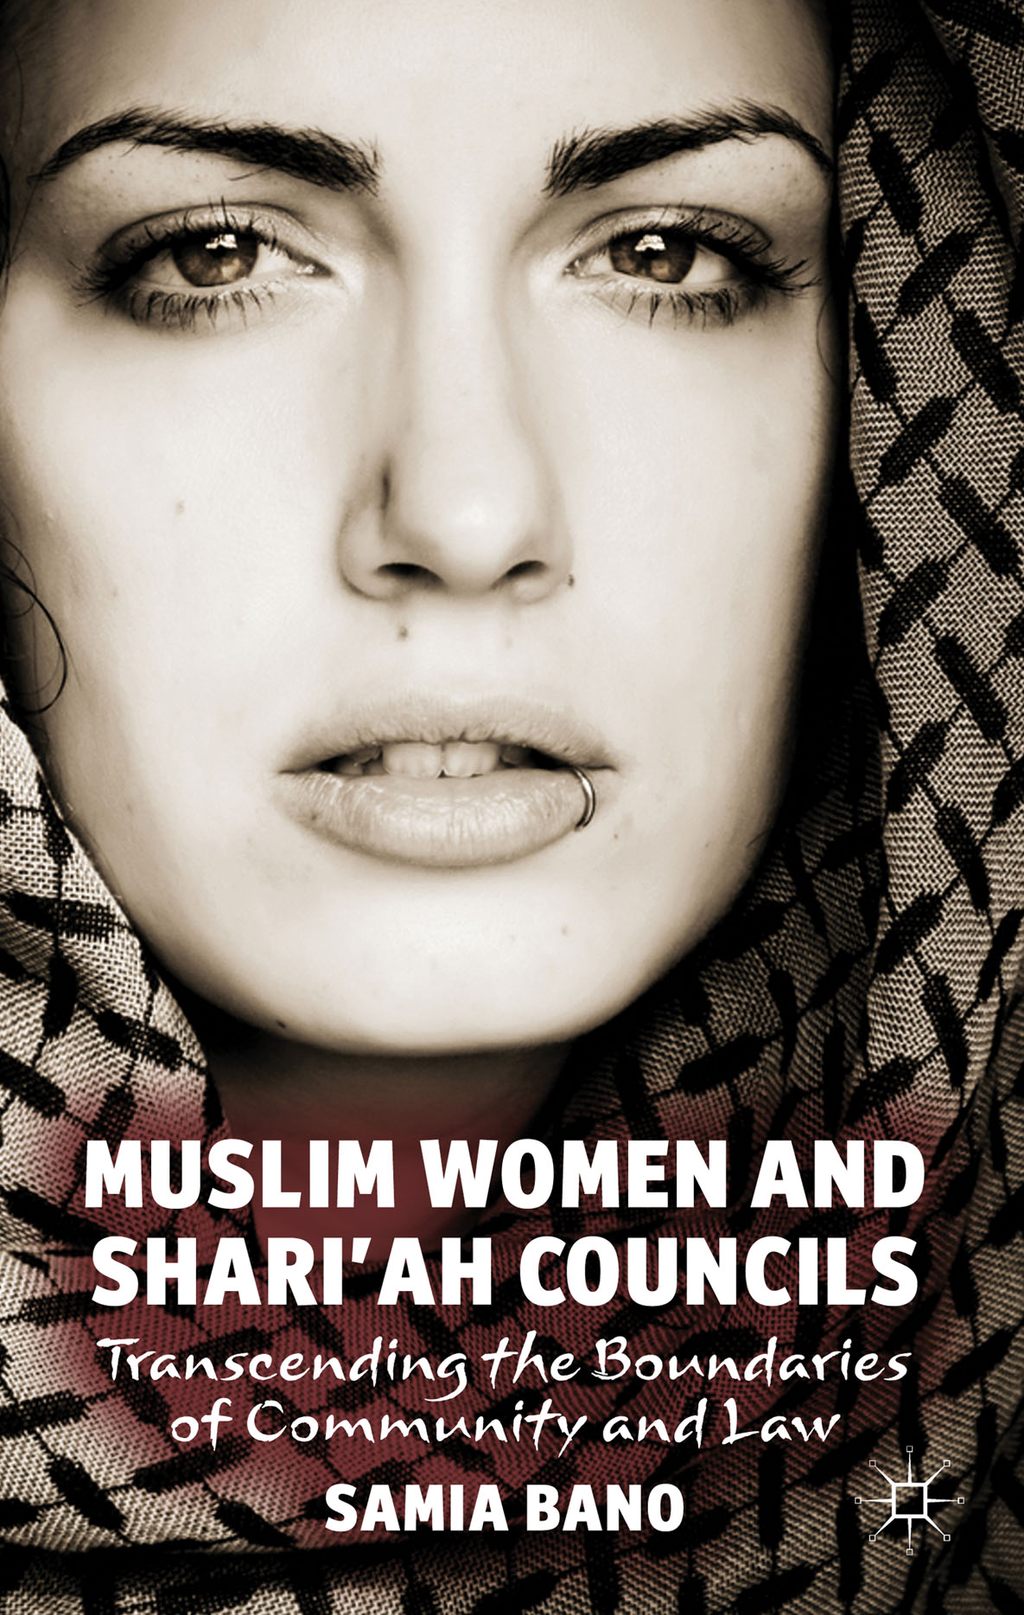 Muslim Women and Shari'ah Councils